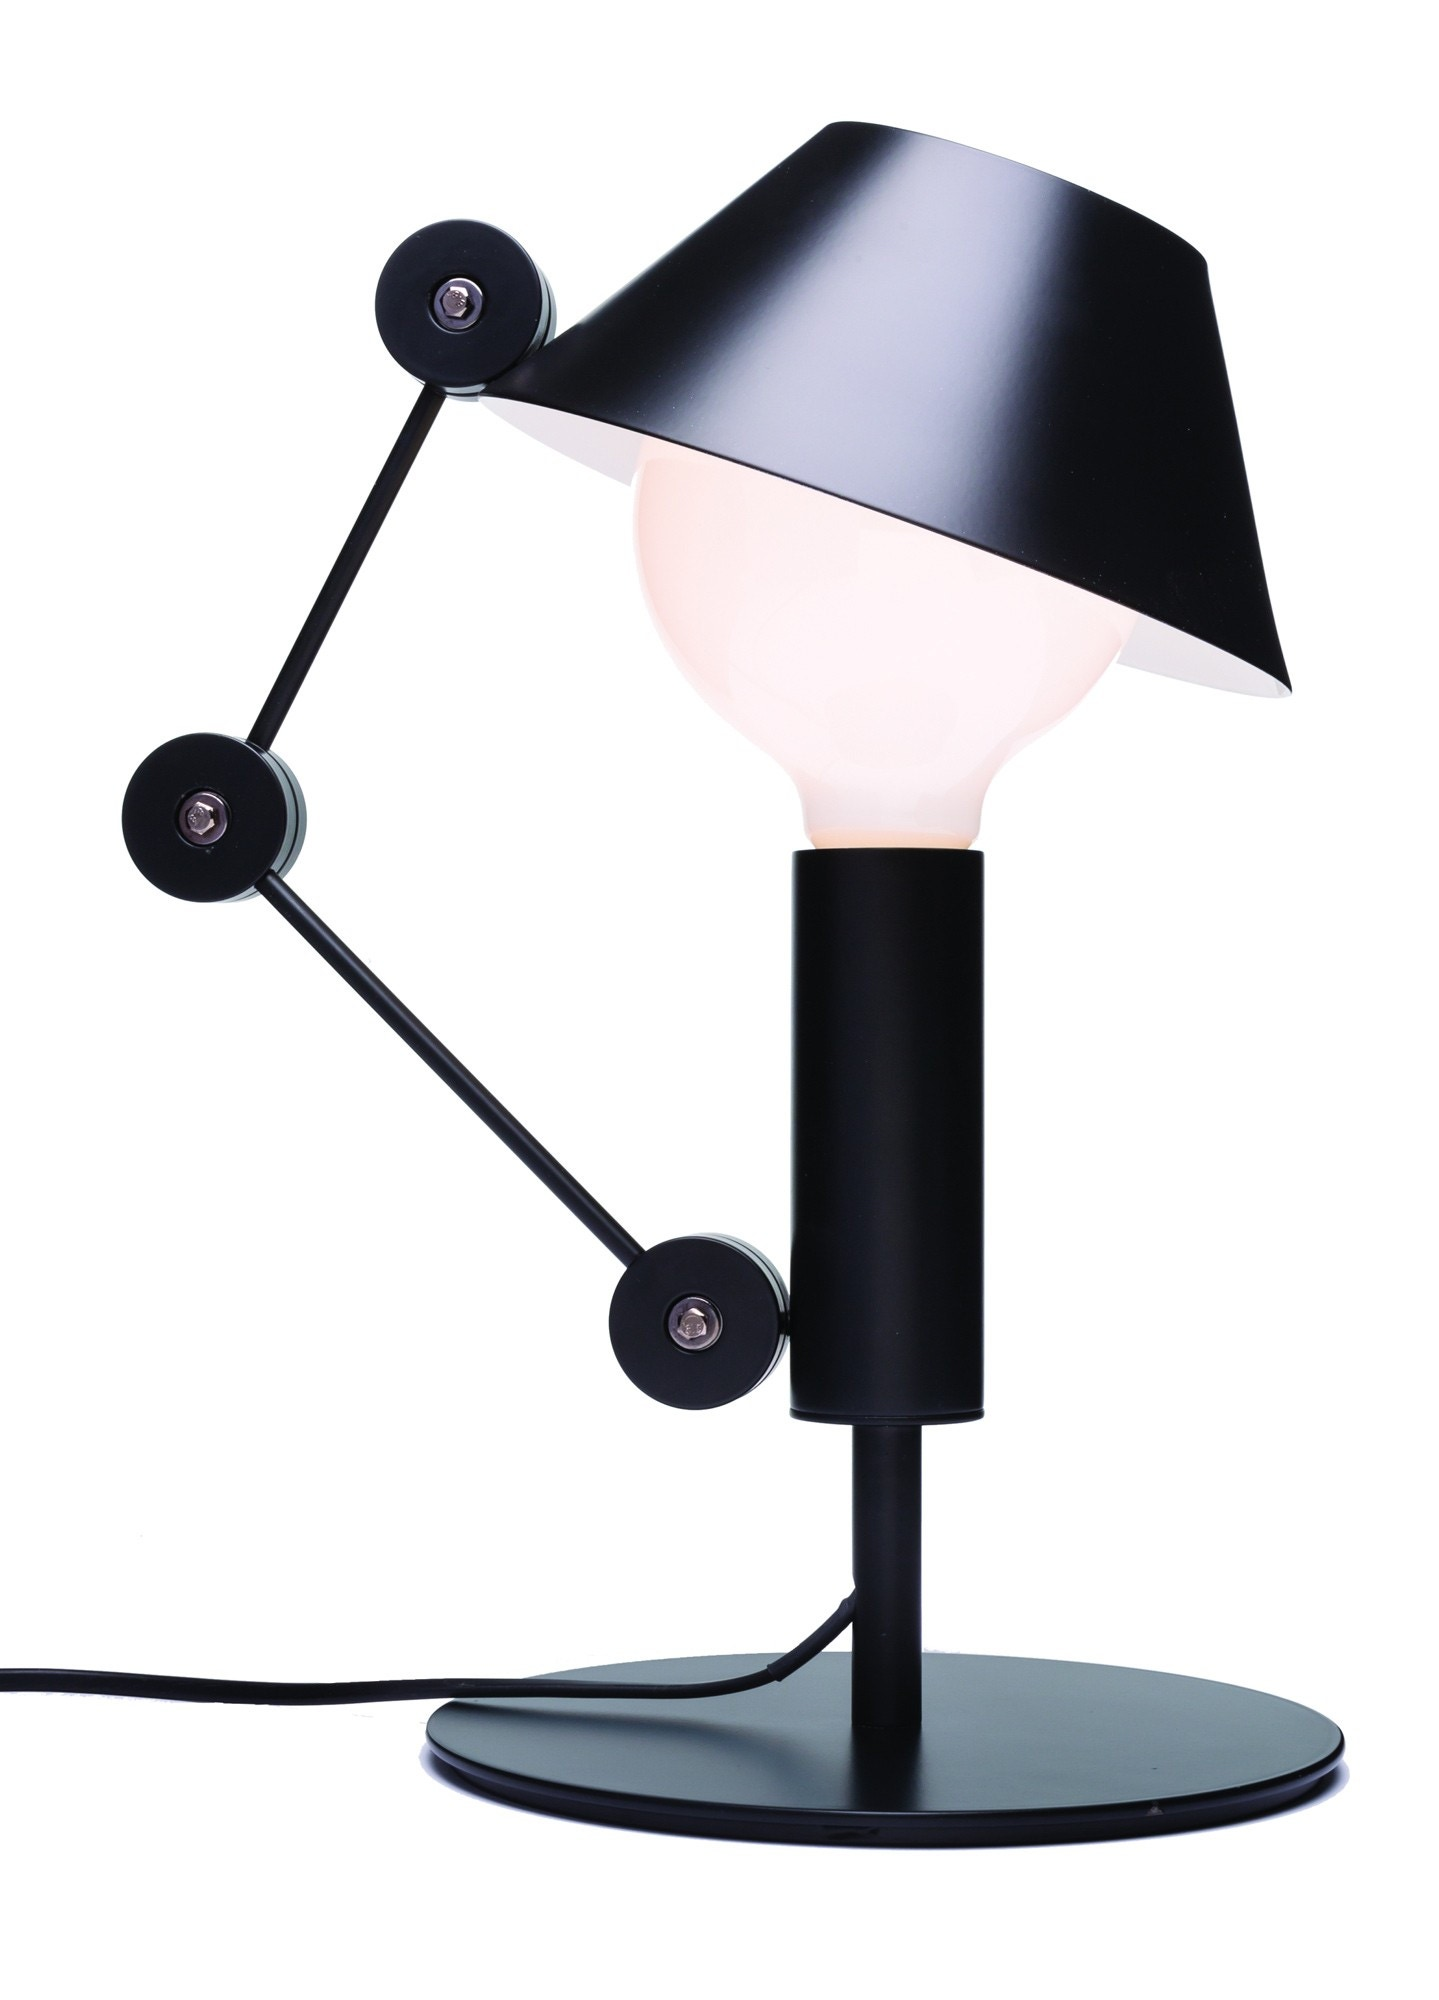 Nemo italianaluce mr light short table lamp gr shop canada aloadofball Gallery